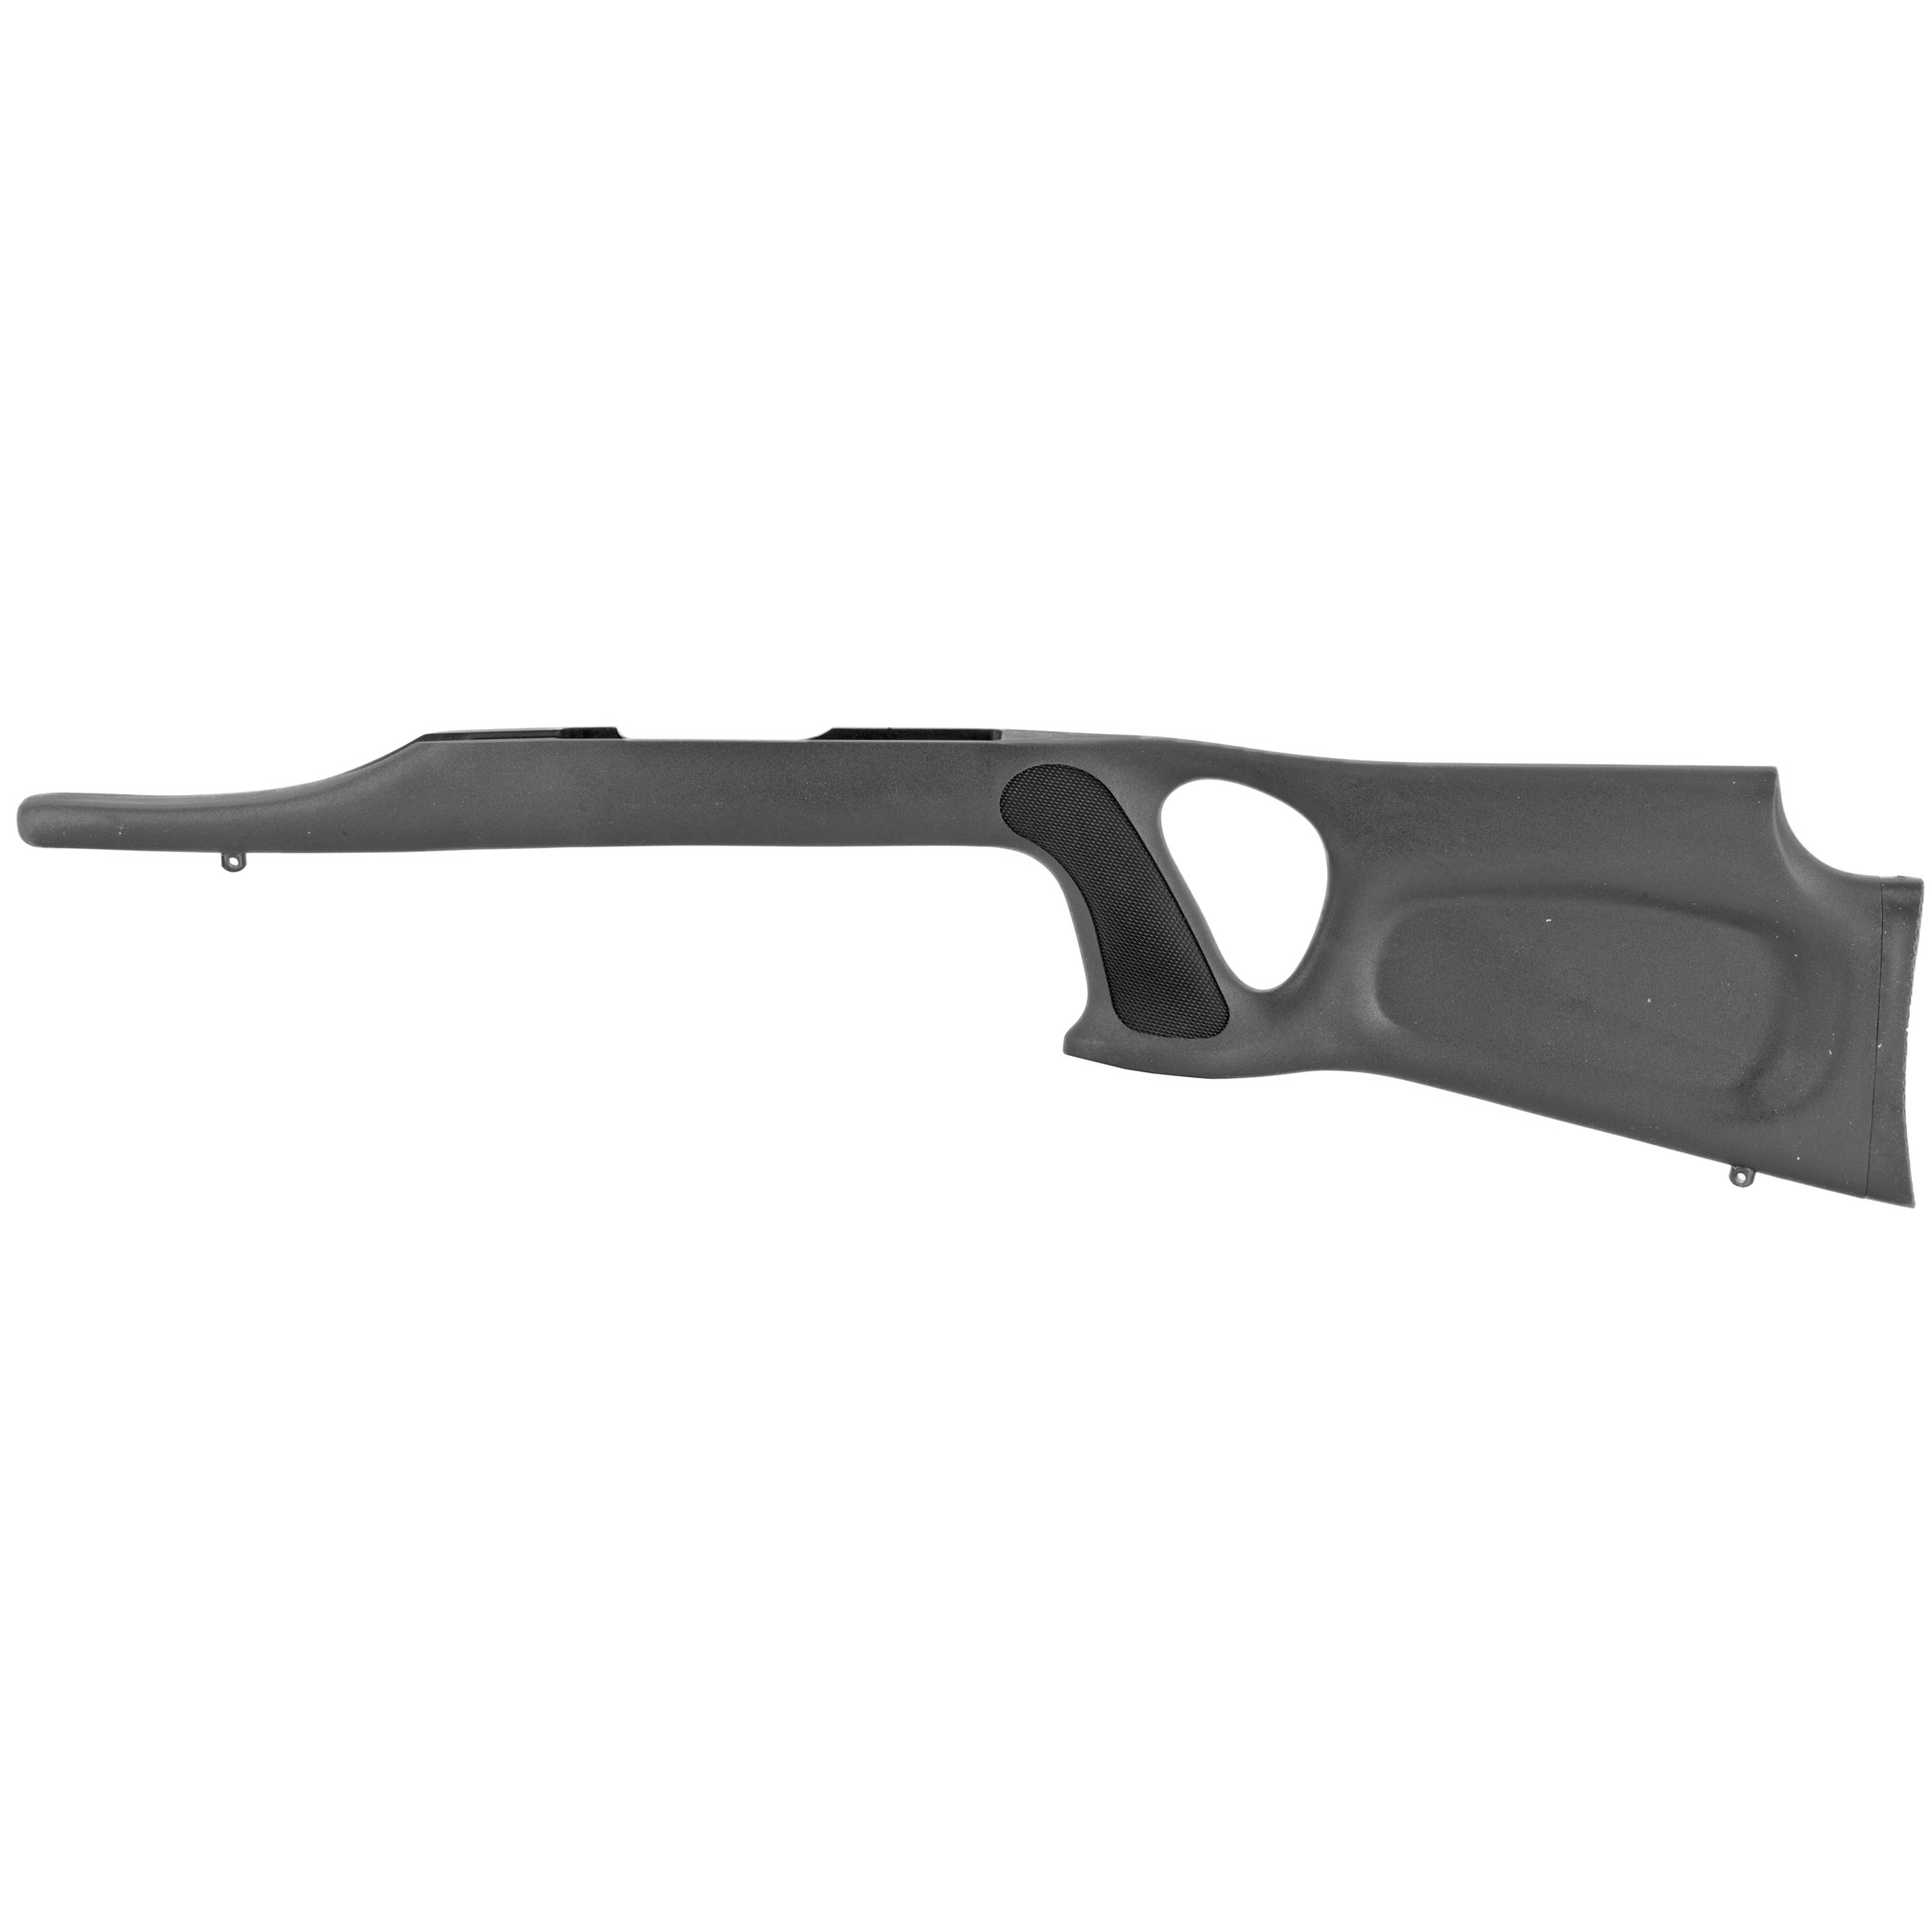 Magnum Research's Glacier Ridge 10/22 LR Ambidextrous Thumbhole Stock is made from polypropylene with fiber additives for maximum strength. This stock design features a comb height designed for comfort with a semi-palm swell on both sides of the pistol grip. There is a molded to fit rubber butt plate and the comb height easily accommodates optics.